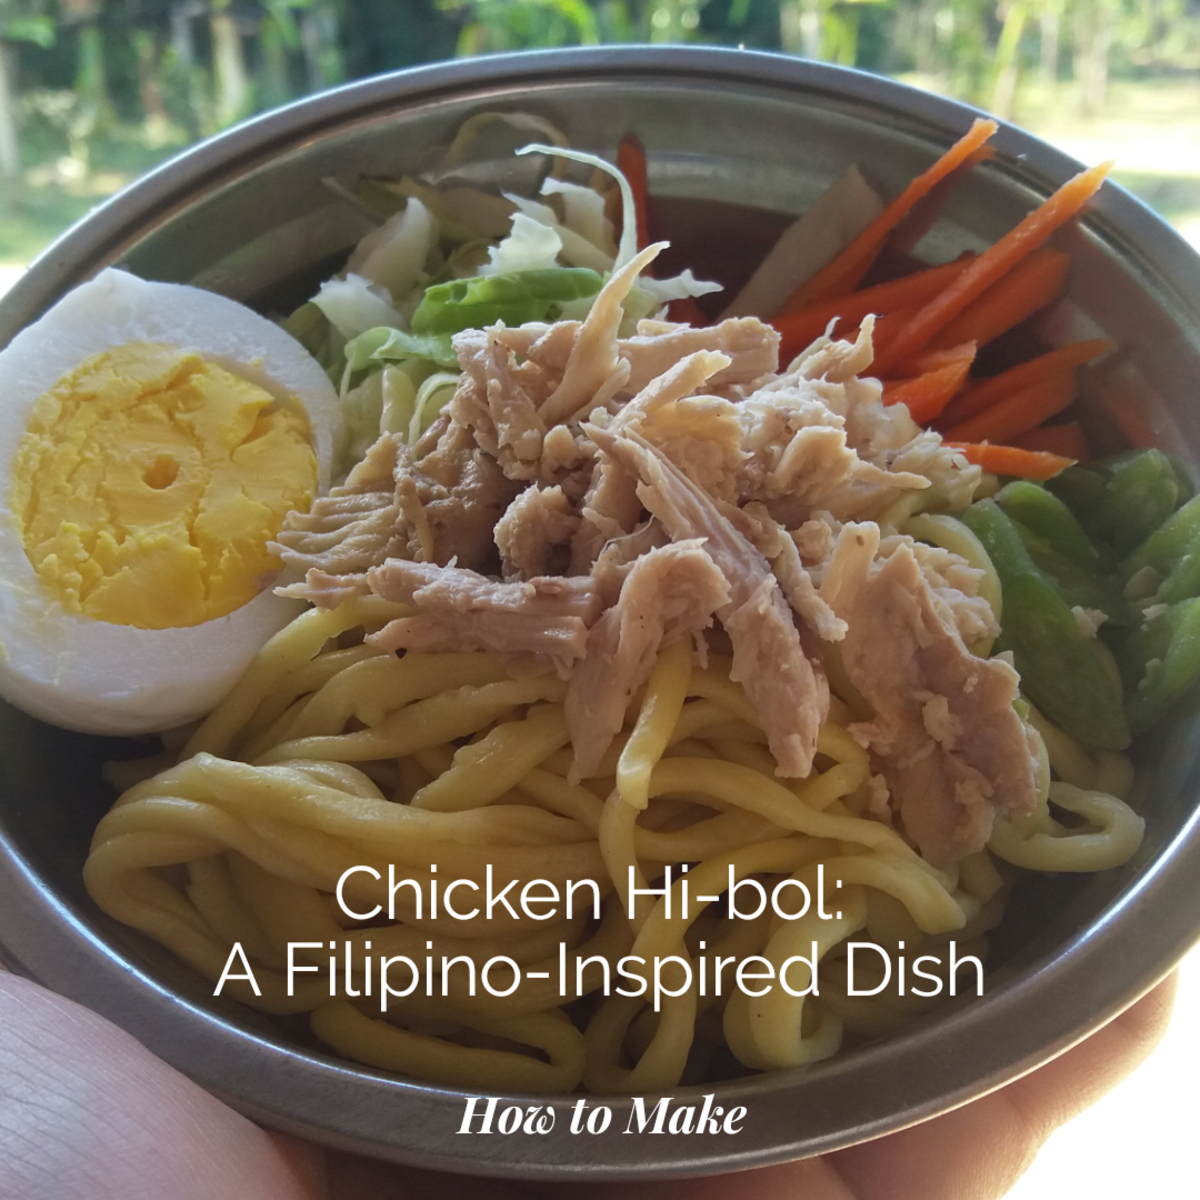 Discover how to make chicken hi-bol, a Filipino-inspired dish.